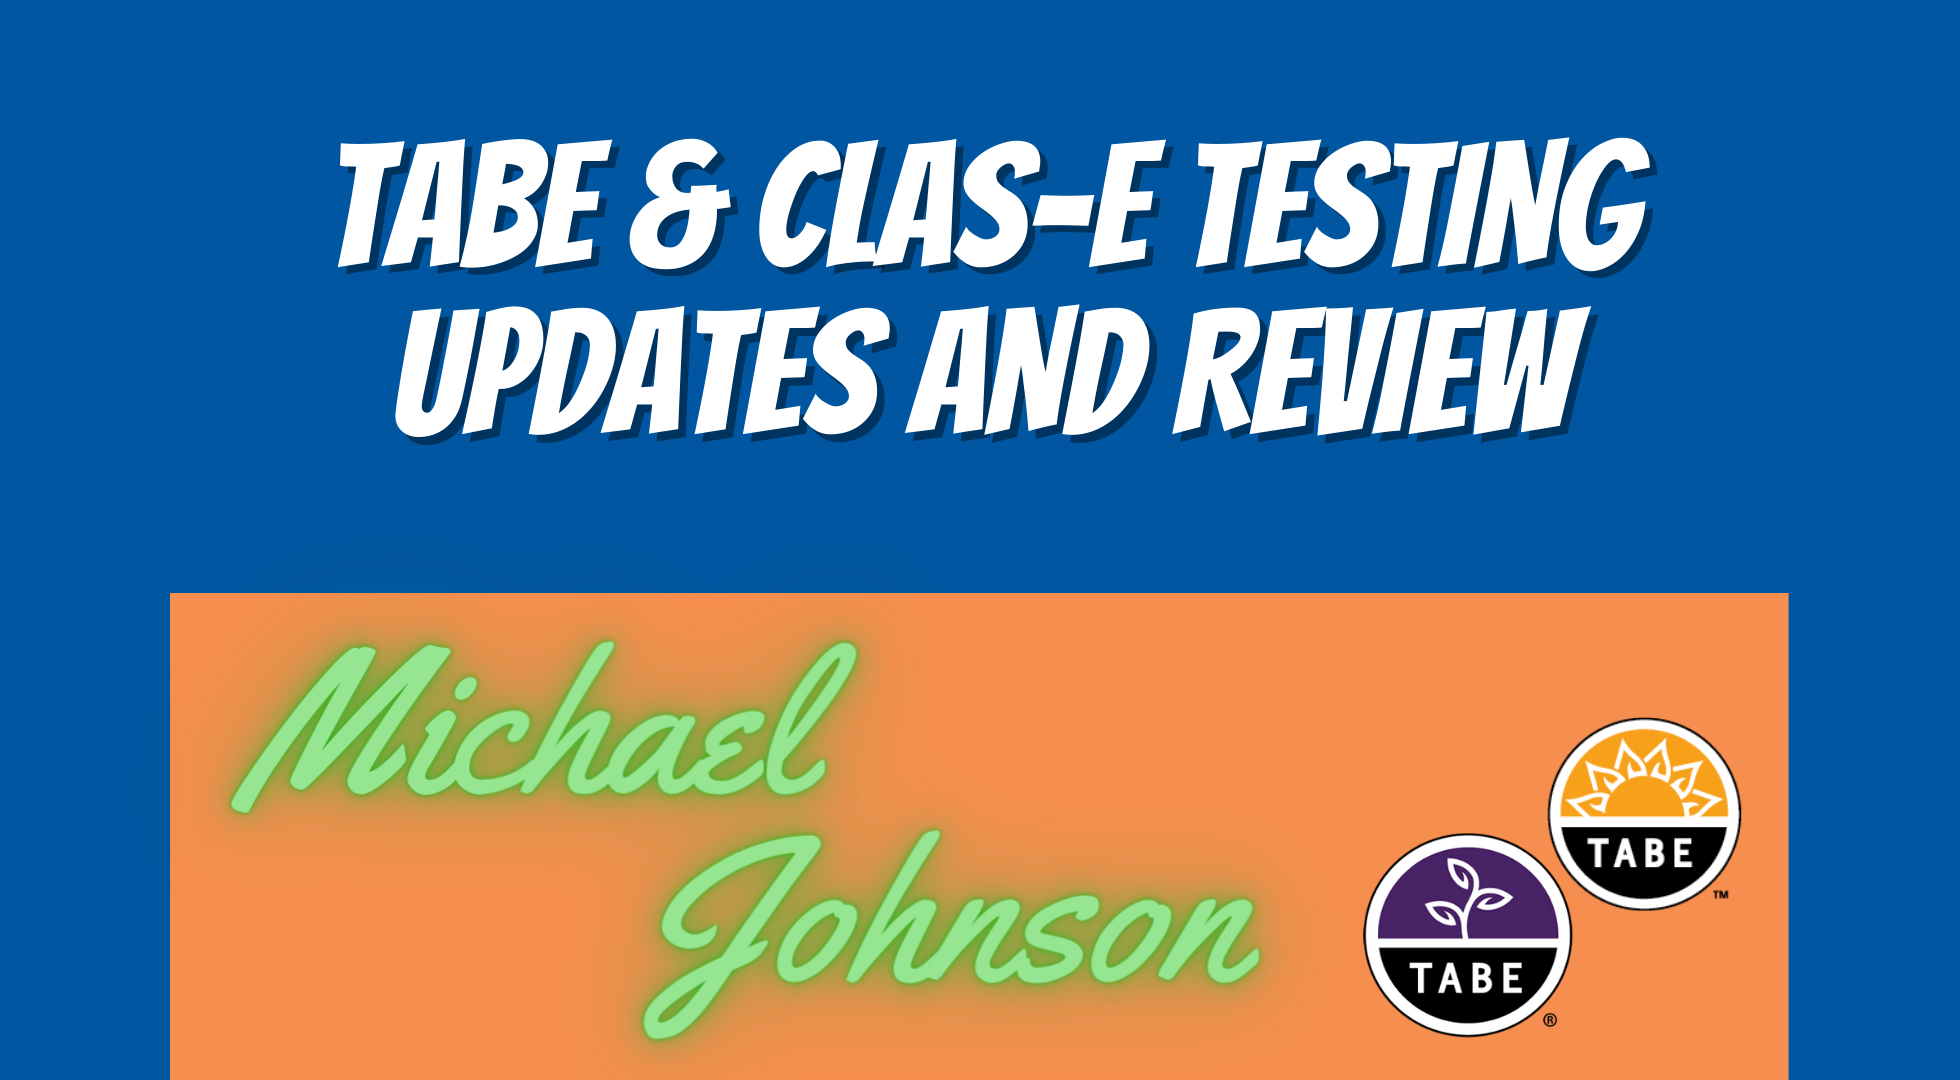 TABE & CLAS-E Testing Updates and Review